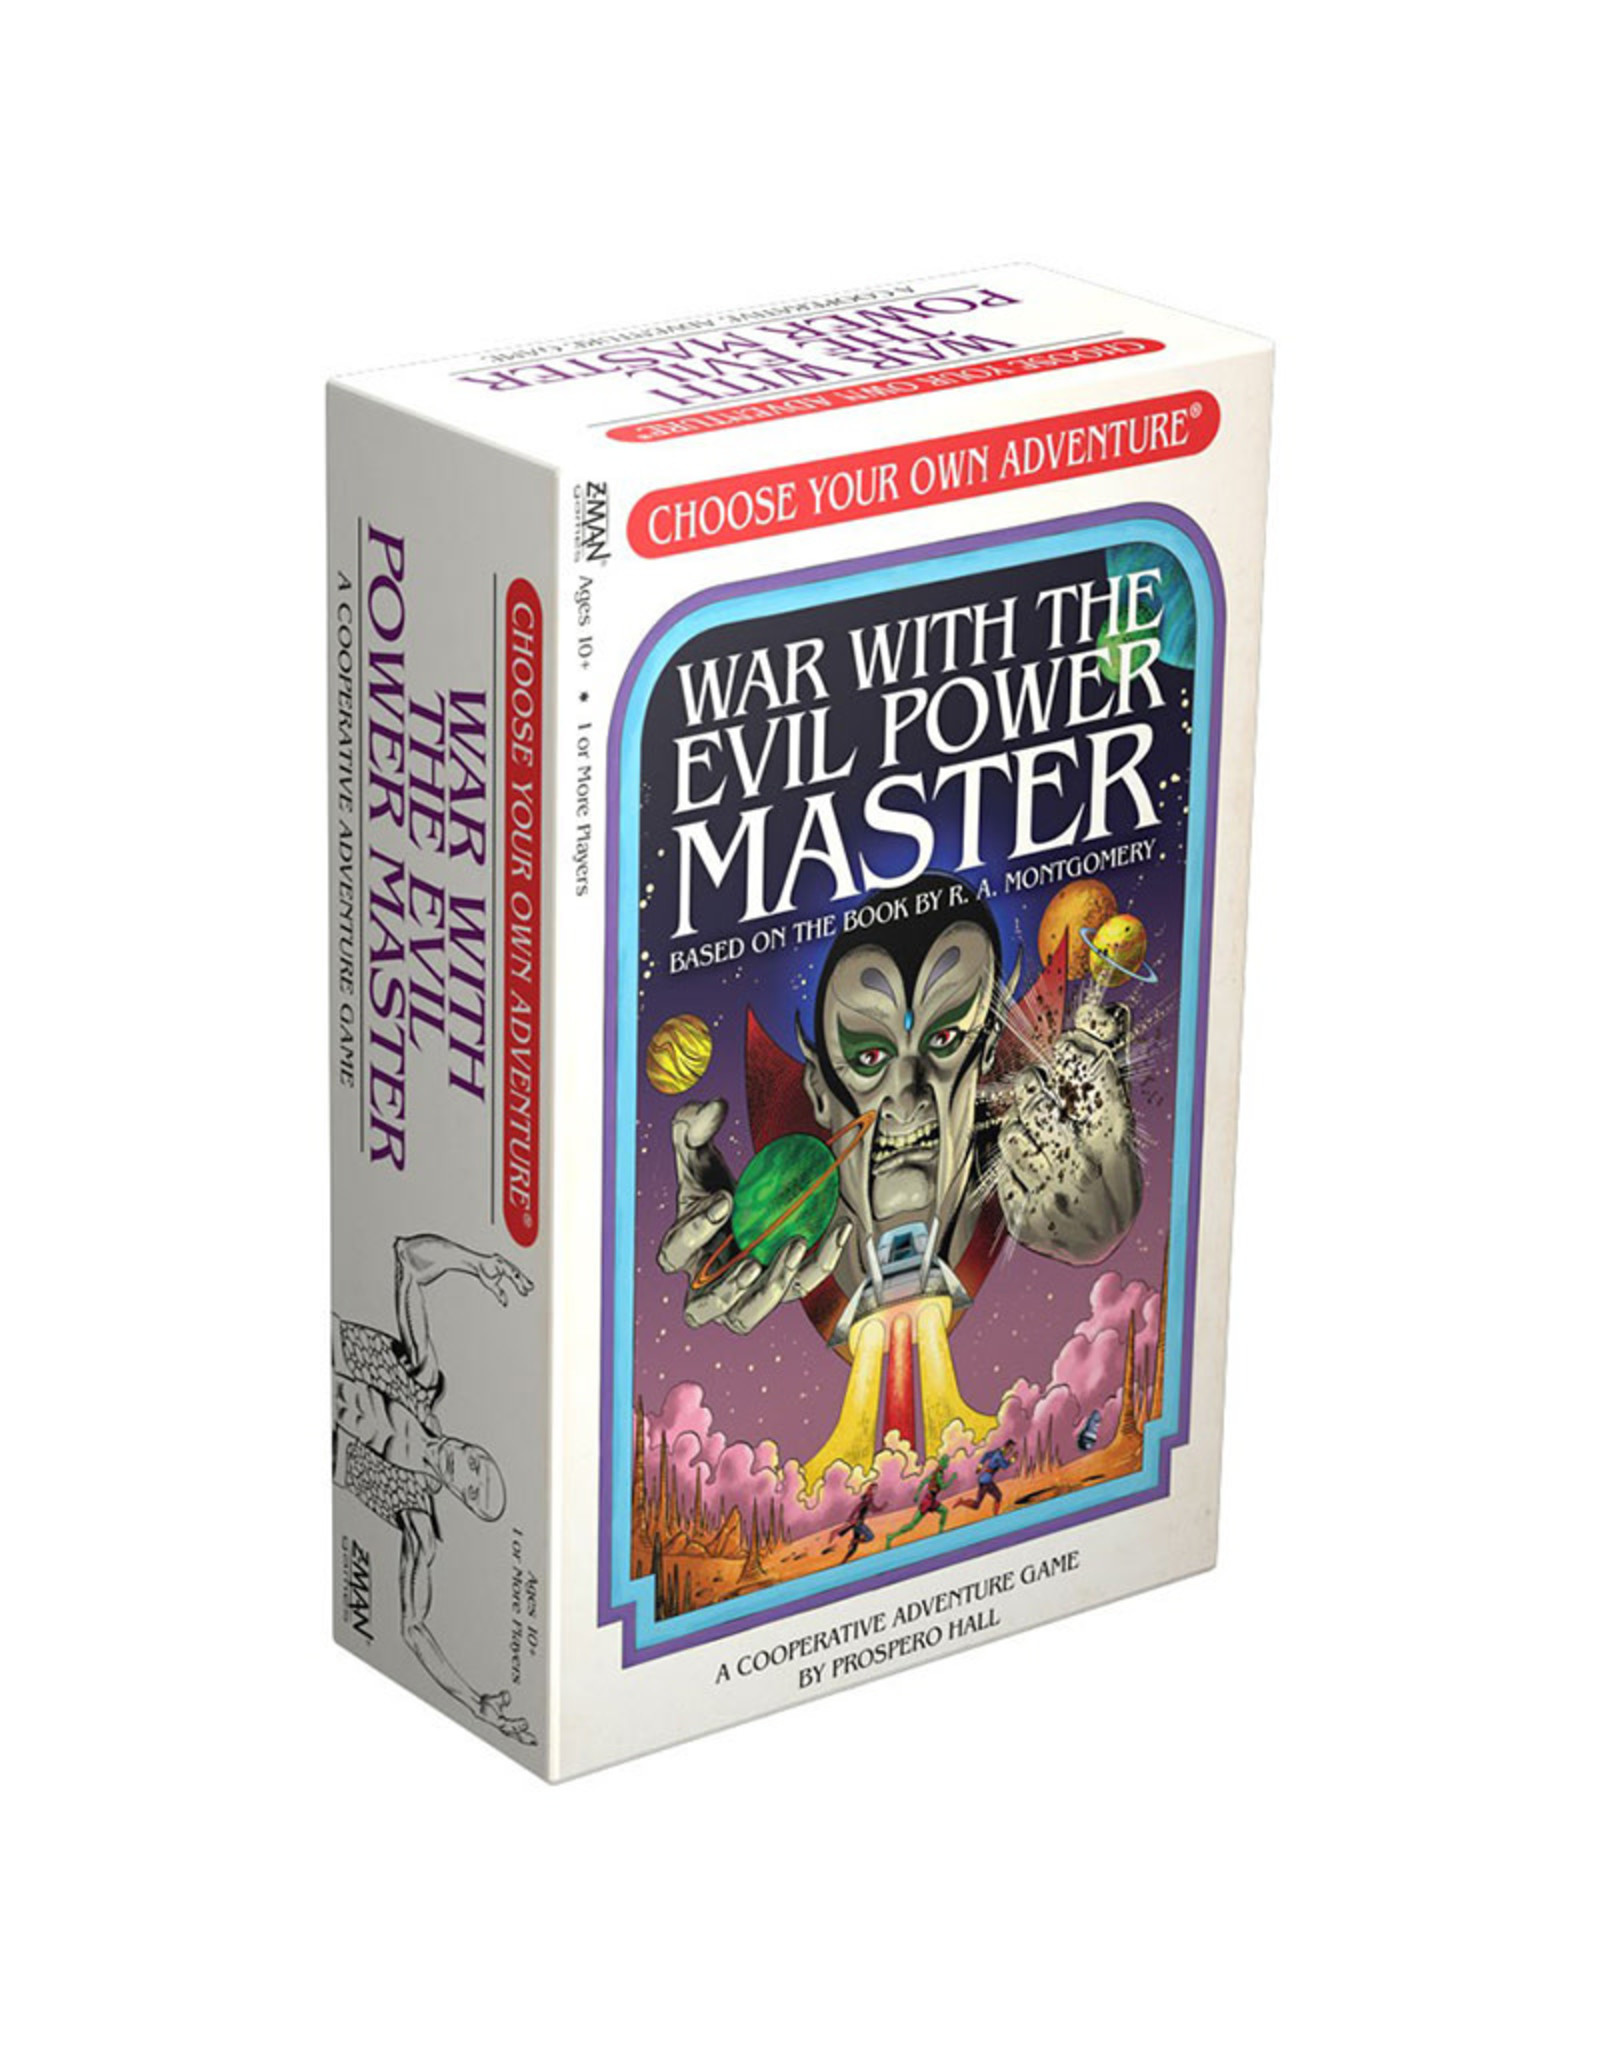 Choose Your Own Adventure War With the Evil Power Master